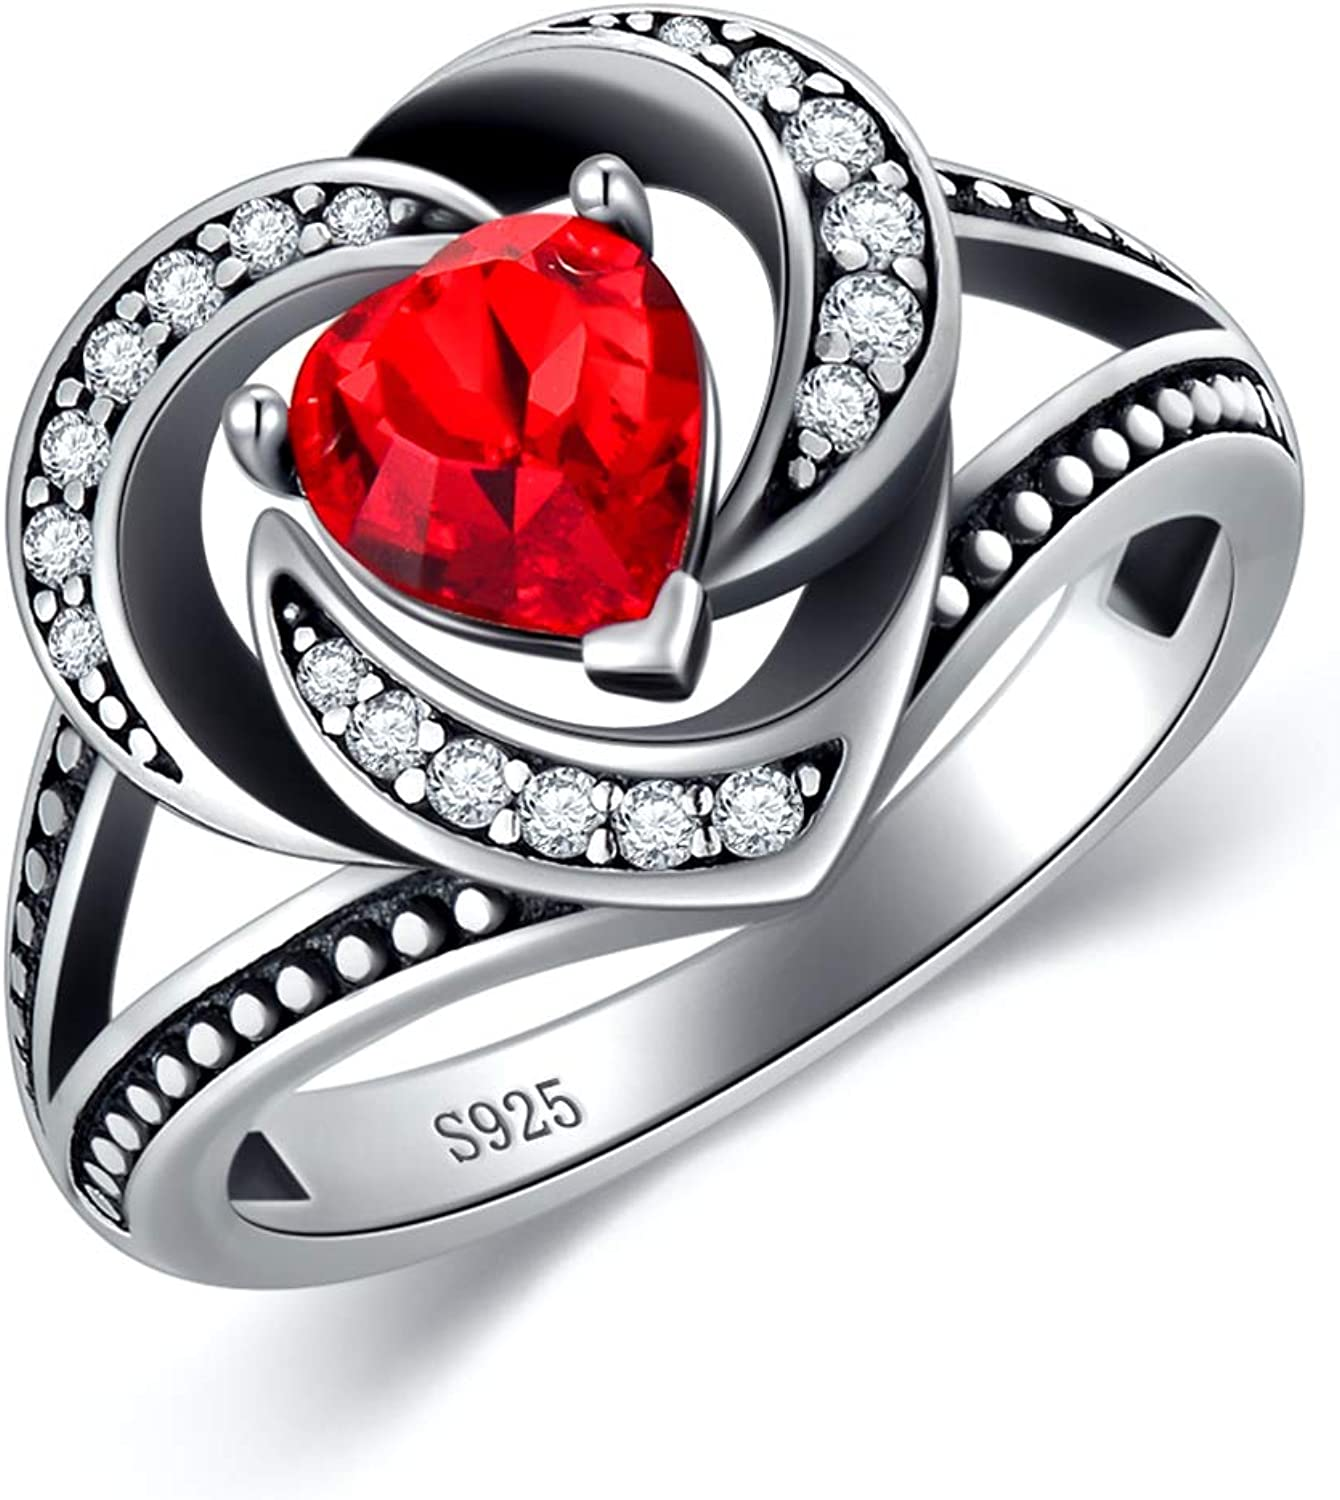 AOBOCO 925 Sterling Silver Vintage Style Halo Heart Rings for Women with Simulated Ruby Red Swarovski Crystal, Size 6-8